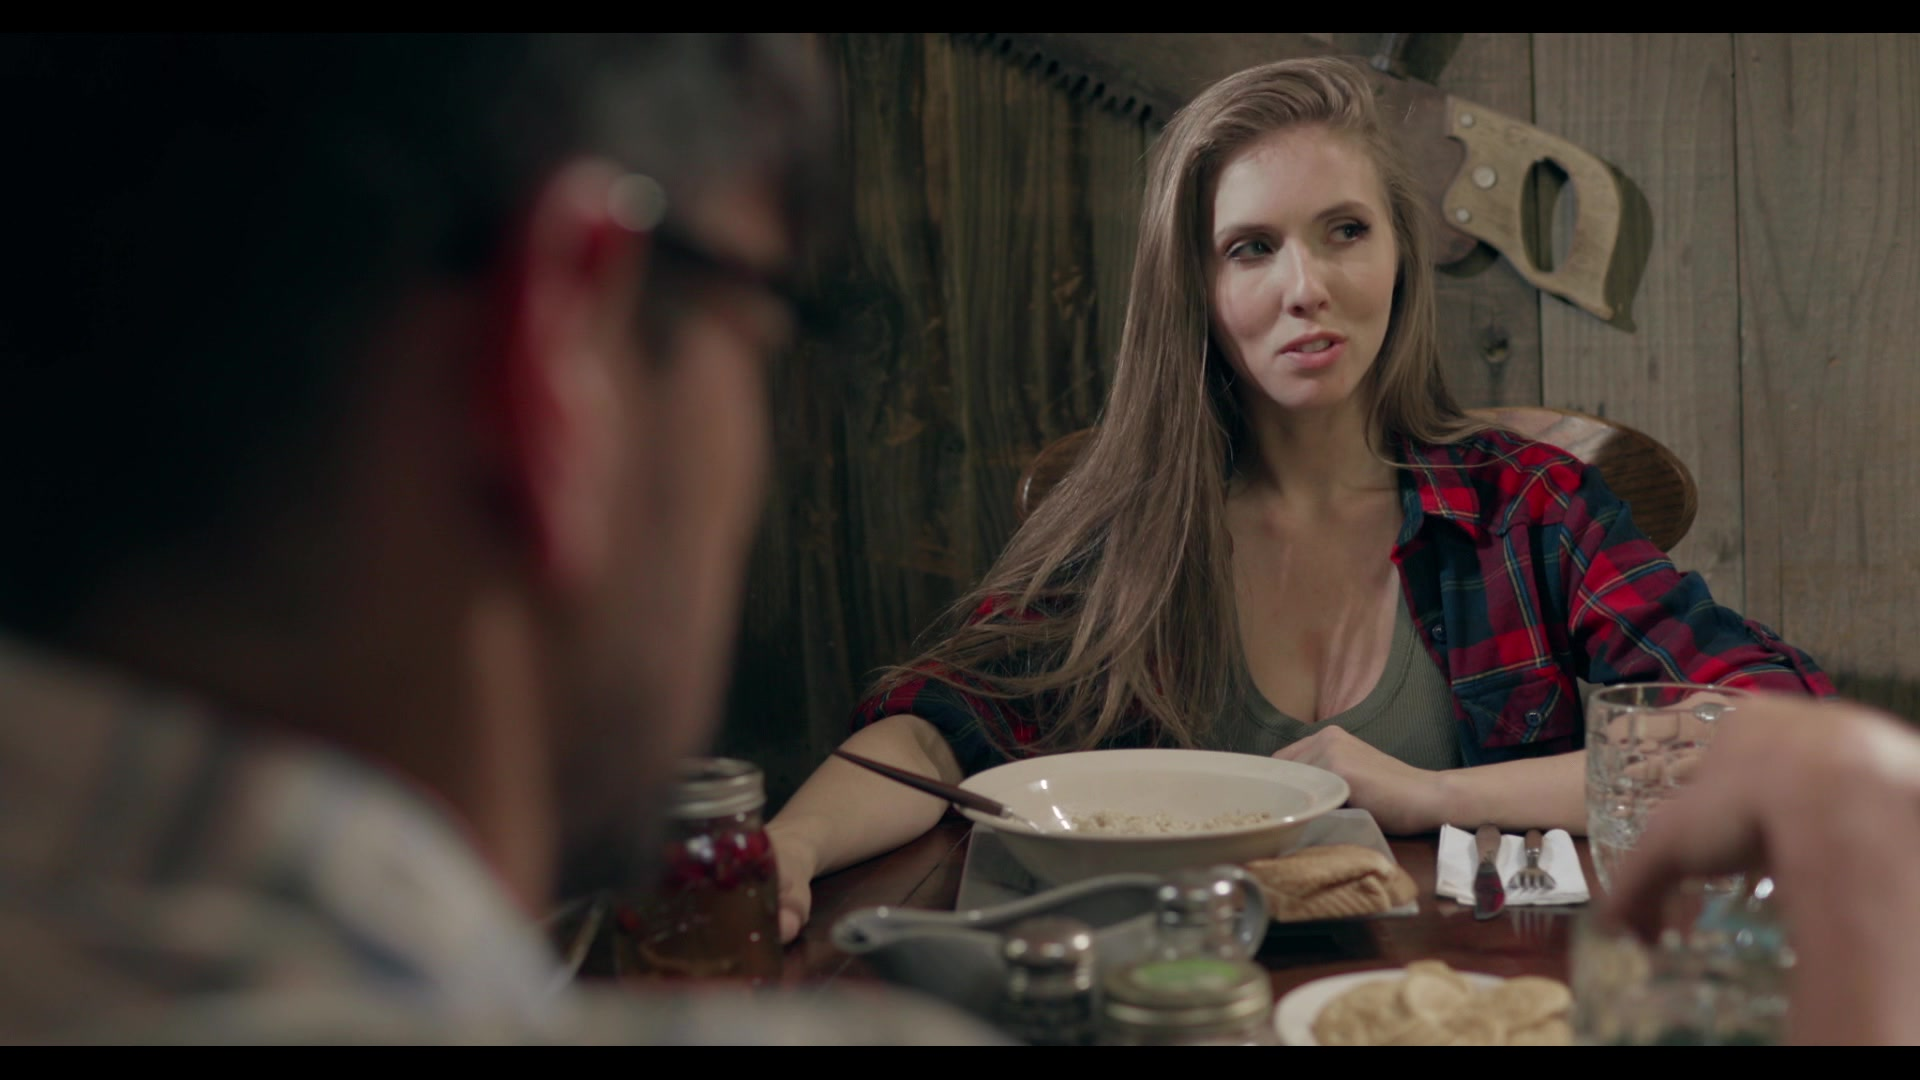 Scene with Ryan Driller and Jessa Rhodes - image 17 out of 20